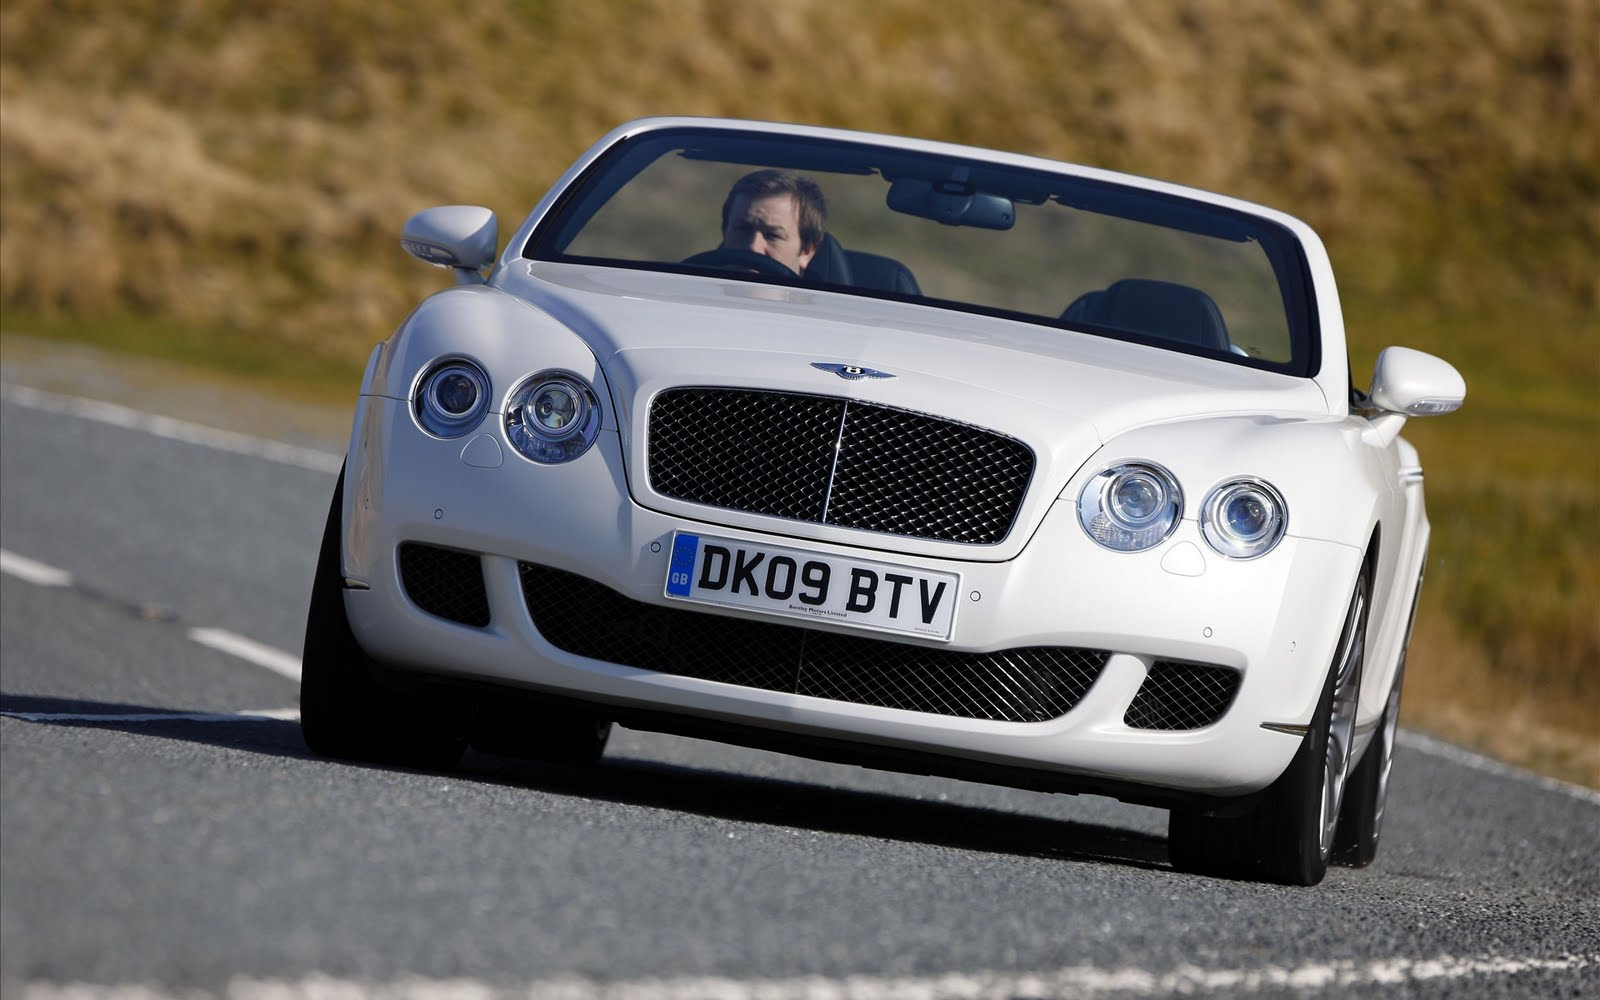 Introduction Of The New Bentley Continental GTC Range Builds On This  Success With A Subtle Evolution Of Its Distinctive Style And A Range Of  Technical And ...